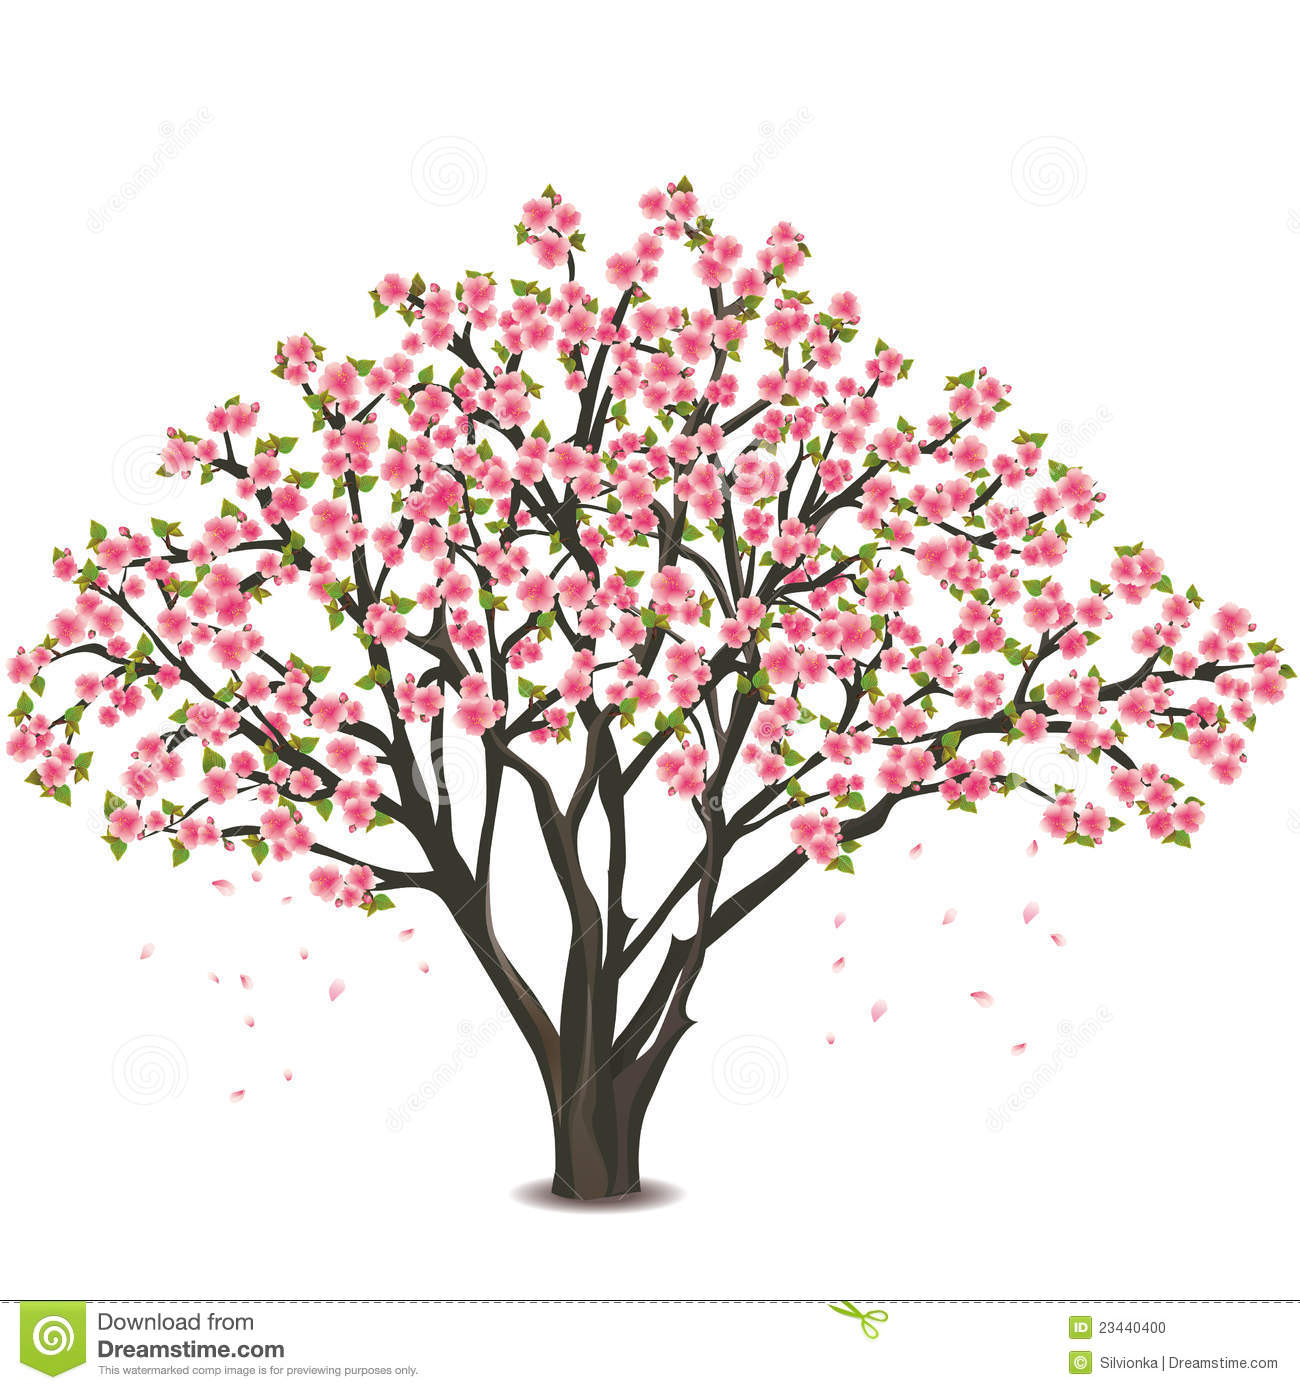 Japanese Cherry Tree Blossom Over White Stock Photo - Image: 23440400